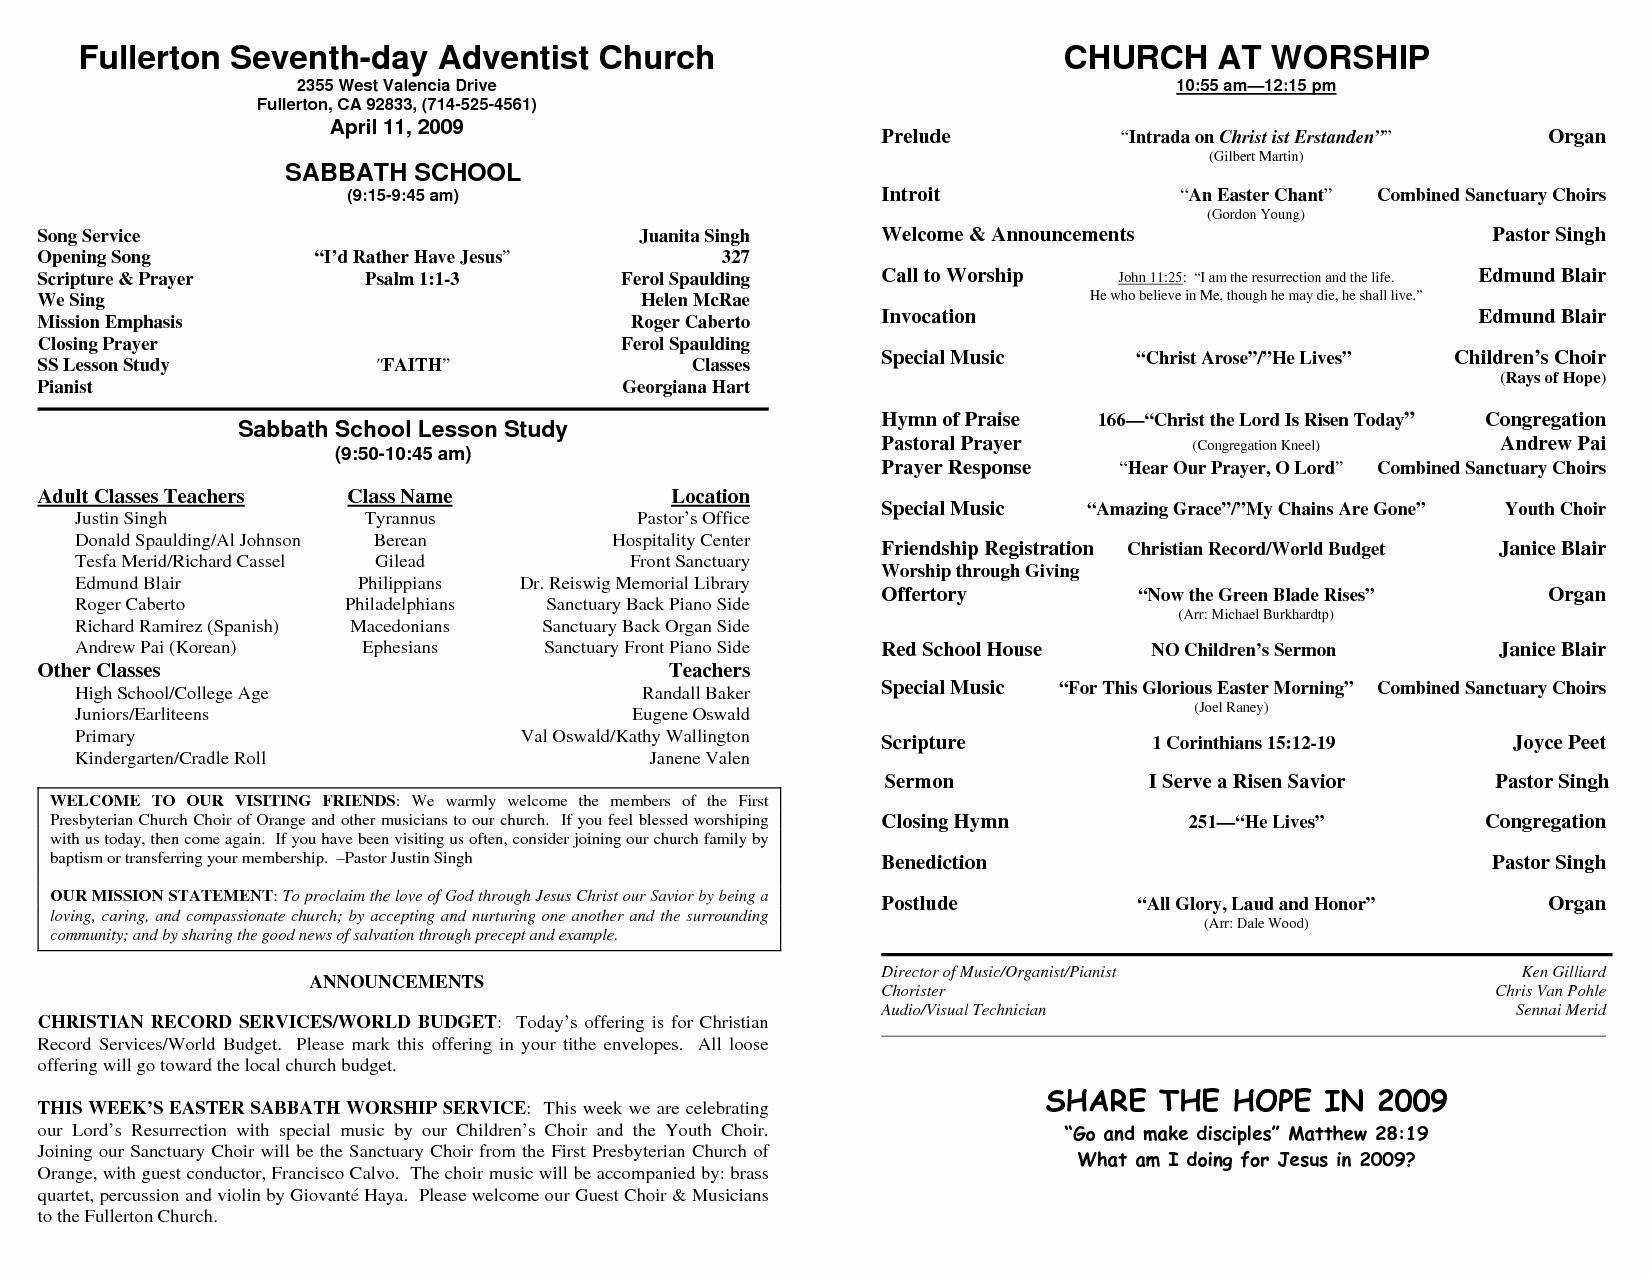 Free Templates for Church Bulletins Awesome Church Bulletin Templates